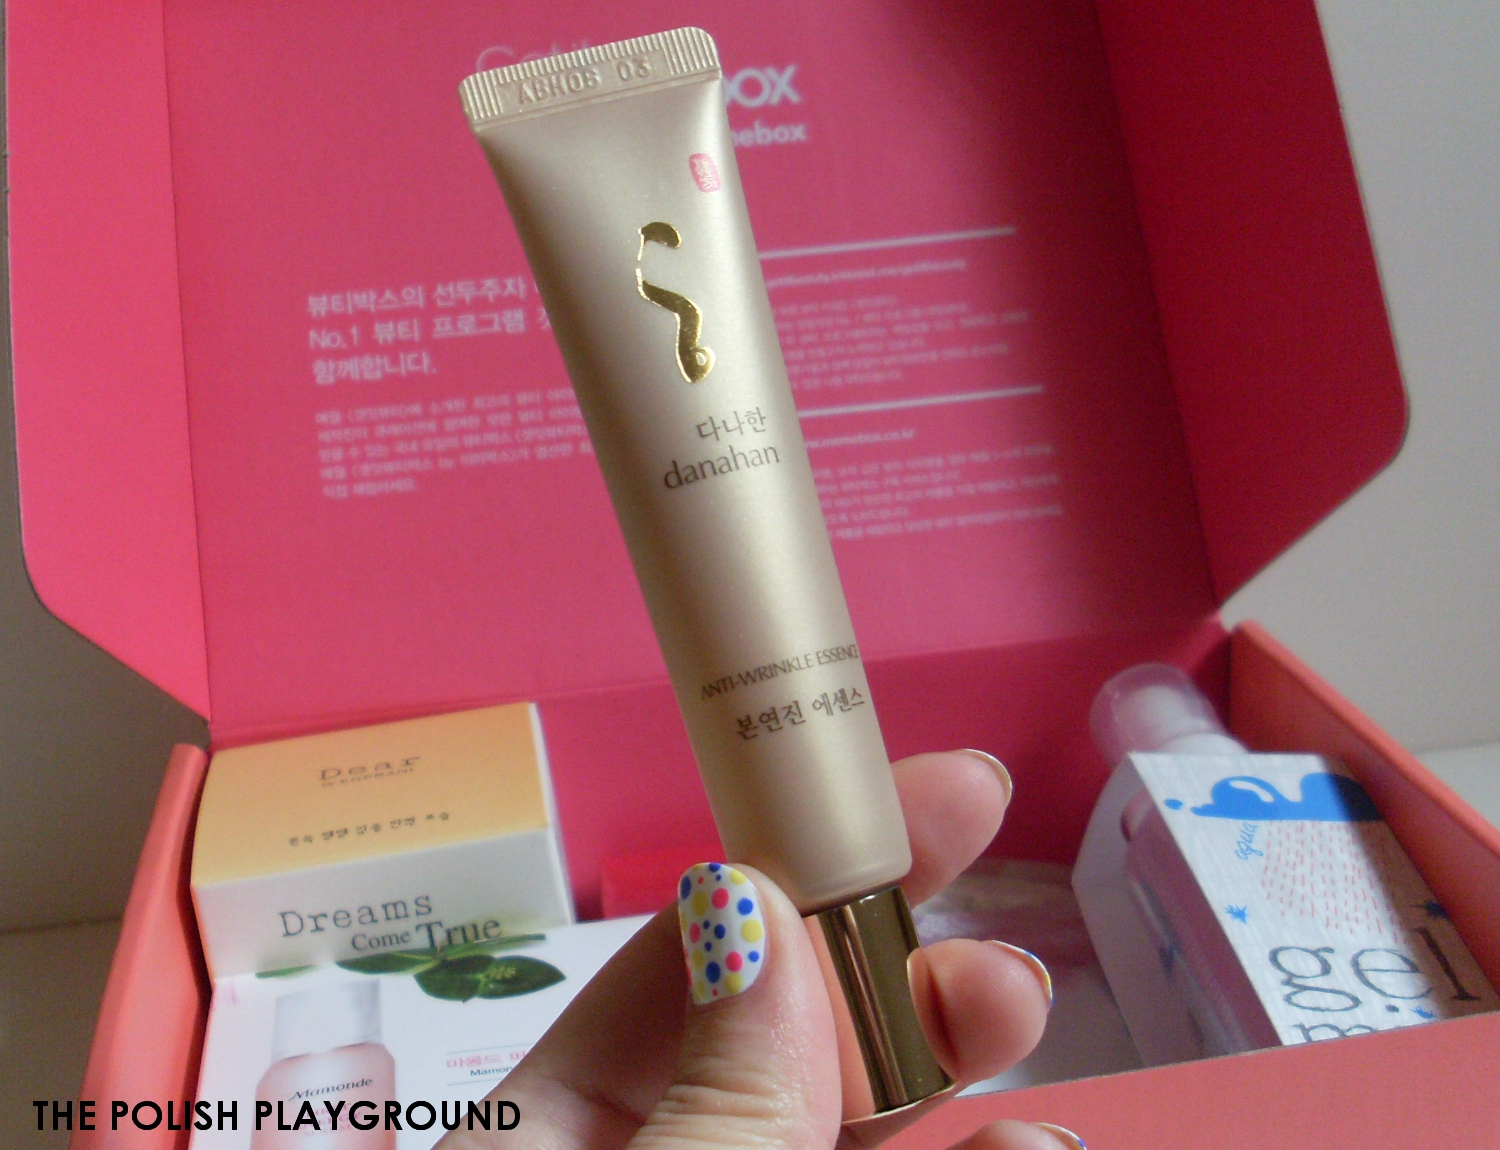 Memebox Luckybox #1 Unboxing and First Impressions - Danahan Bon Yeon Jin Essence